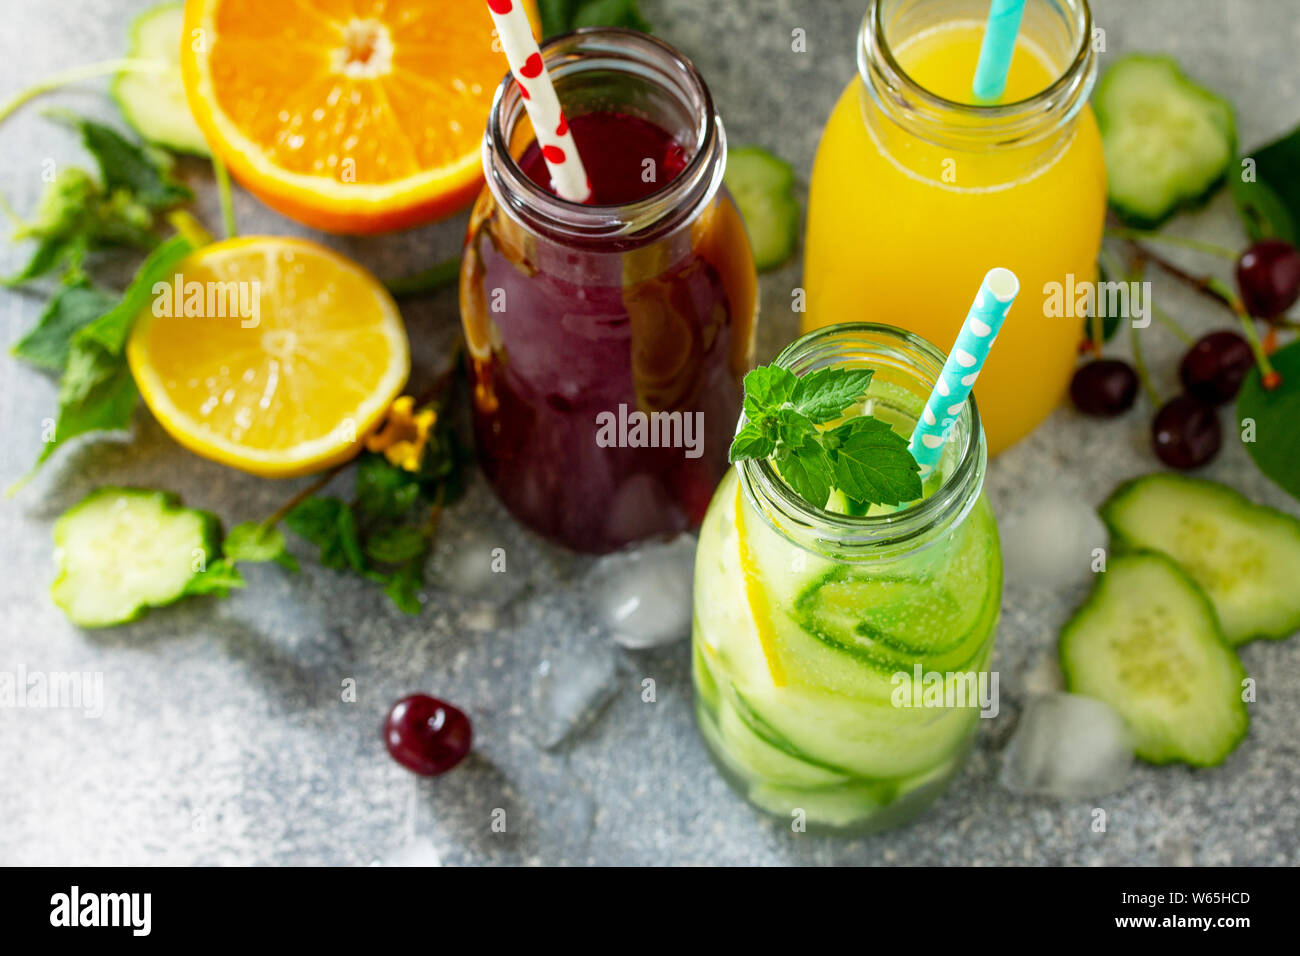 Various refreshments drinks - detox cucumber water, cherry juice and orange juice on stone table. Stock Photo